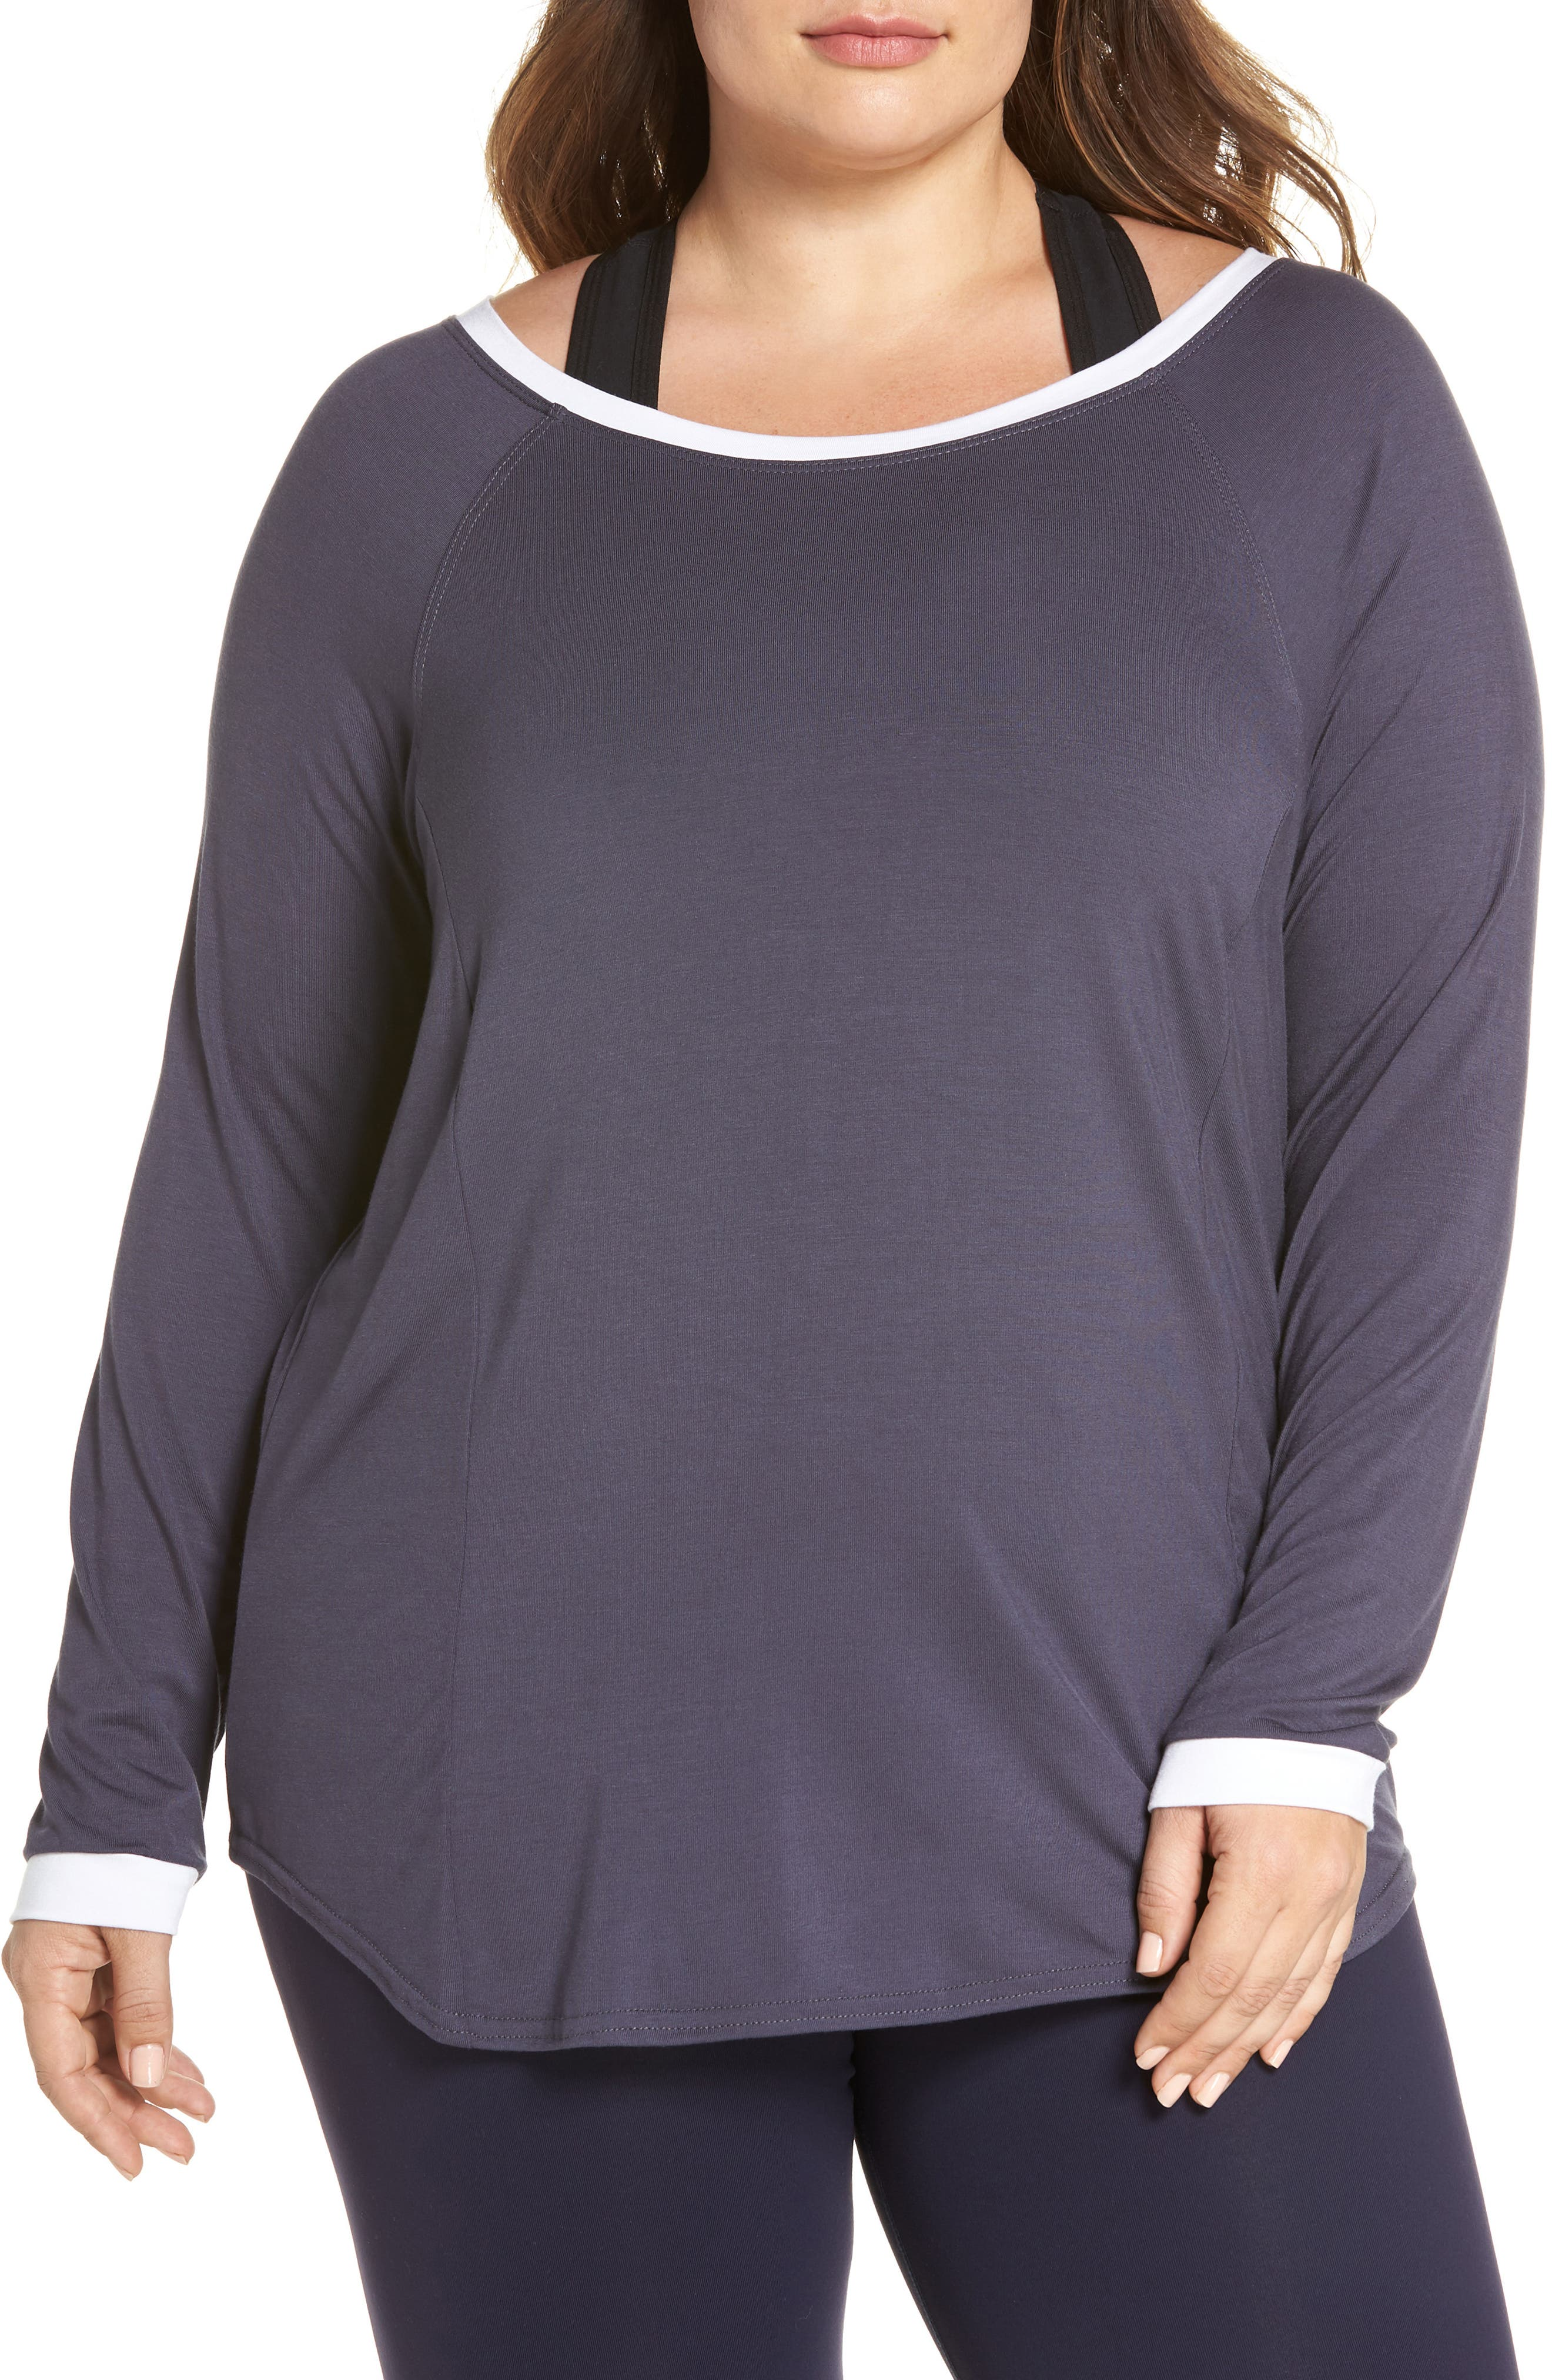 Back Stripe Tee,                         Main,                         color, Charcoal Grey/ White